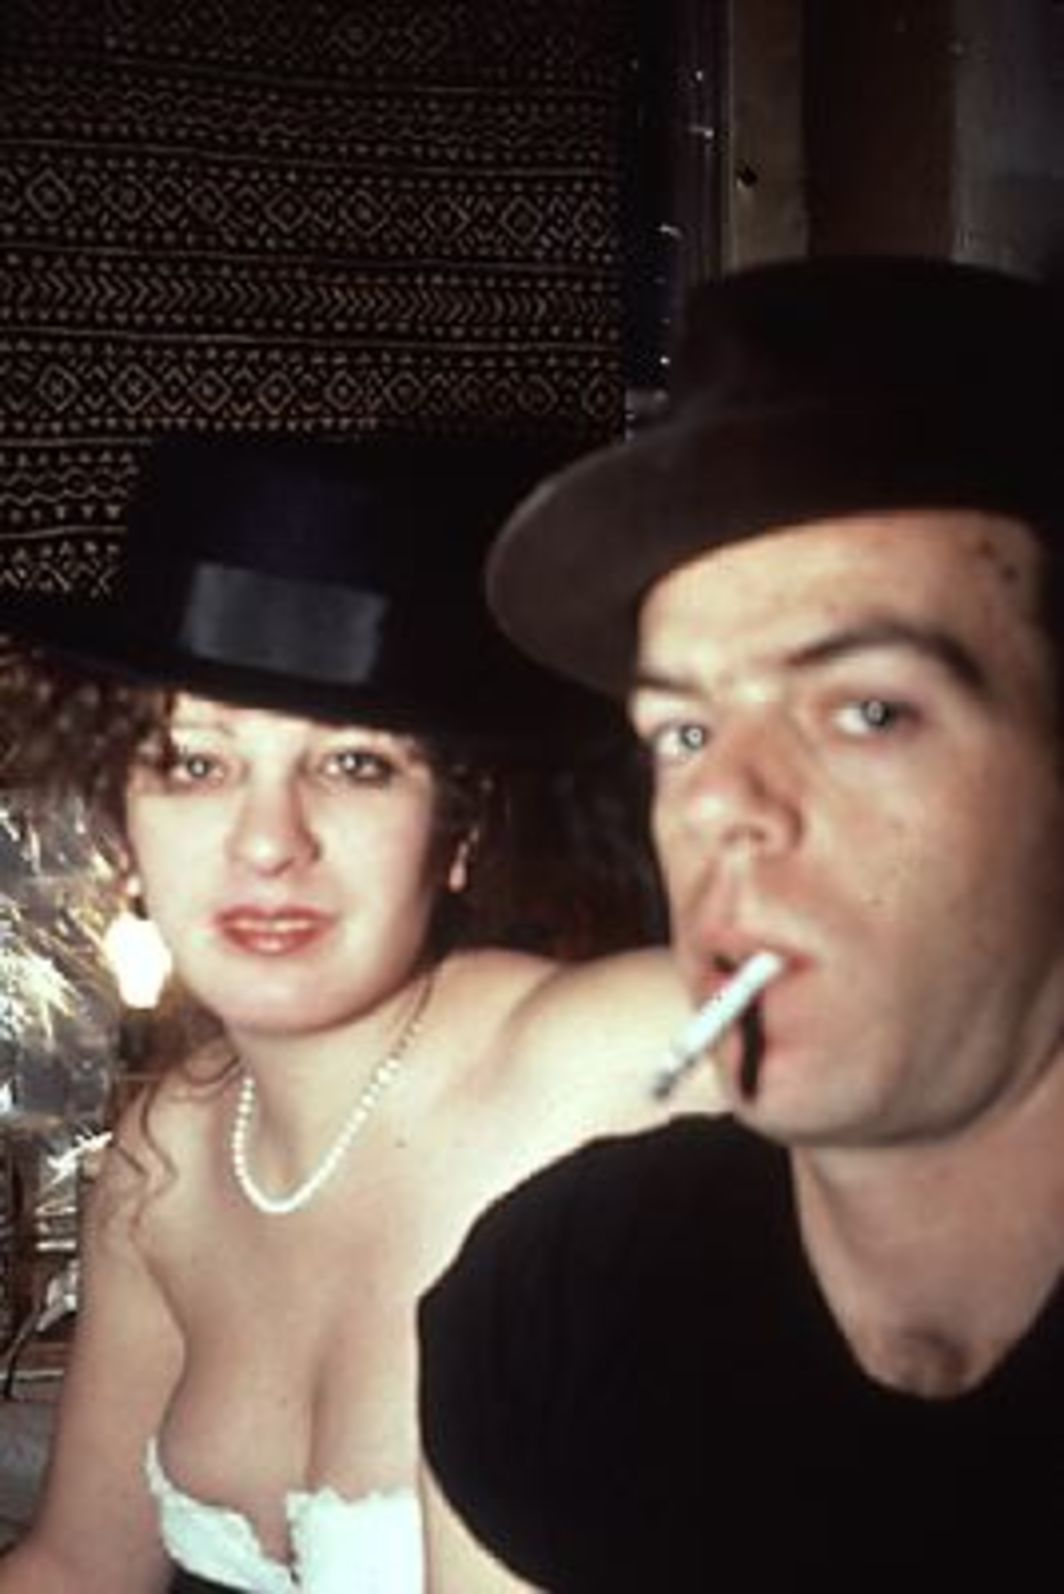 Nan Goldin, Self-portrait with Brian in hats, NYC, 1983, color slide. From The Ballad of Sexual Dependency.